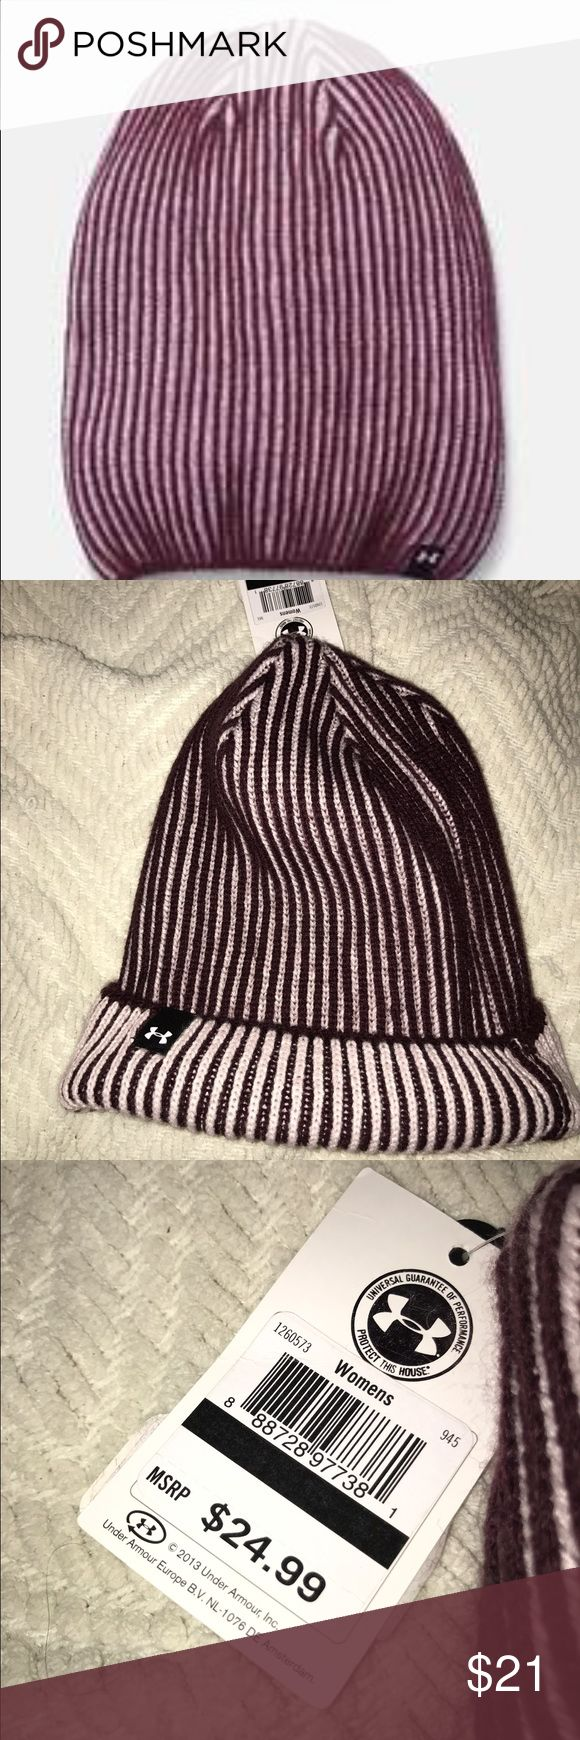 NWT Under Armour Knit Hat Under Armour Women's Deep Burgundy   Basic soft, rib knit construction Versatile design can be cuffed up or worn slouchy 100% Acrylic Under Armour Accessories Hats